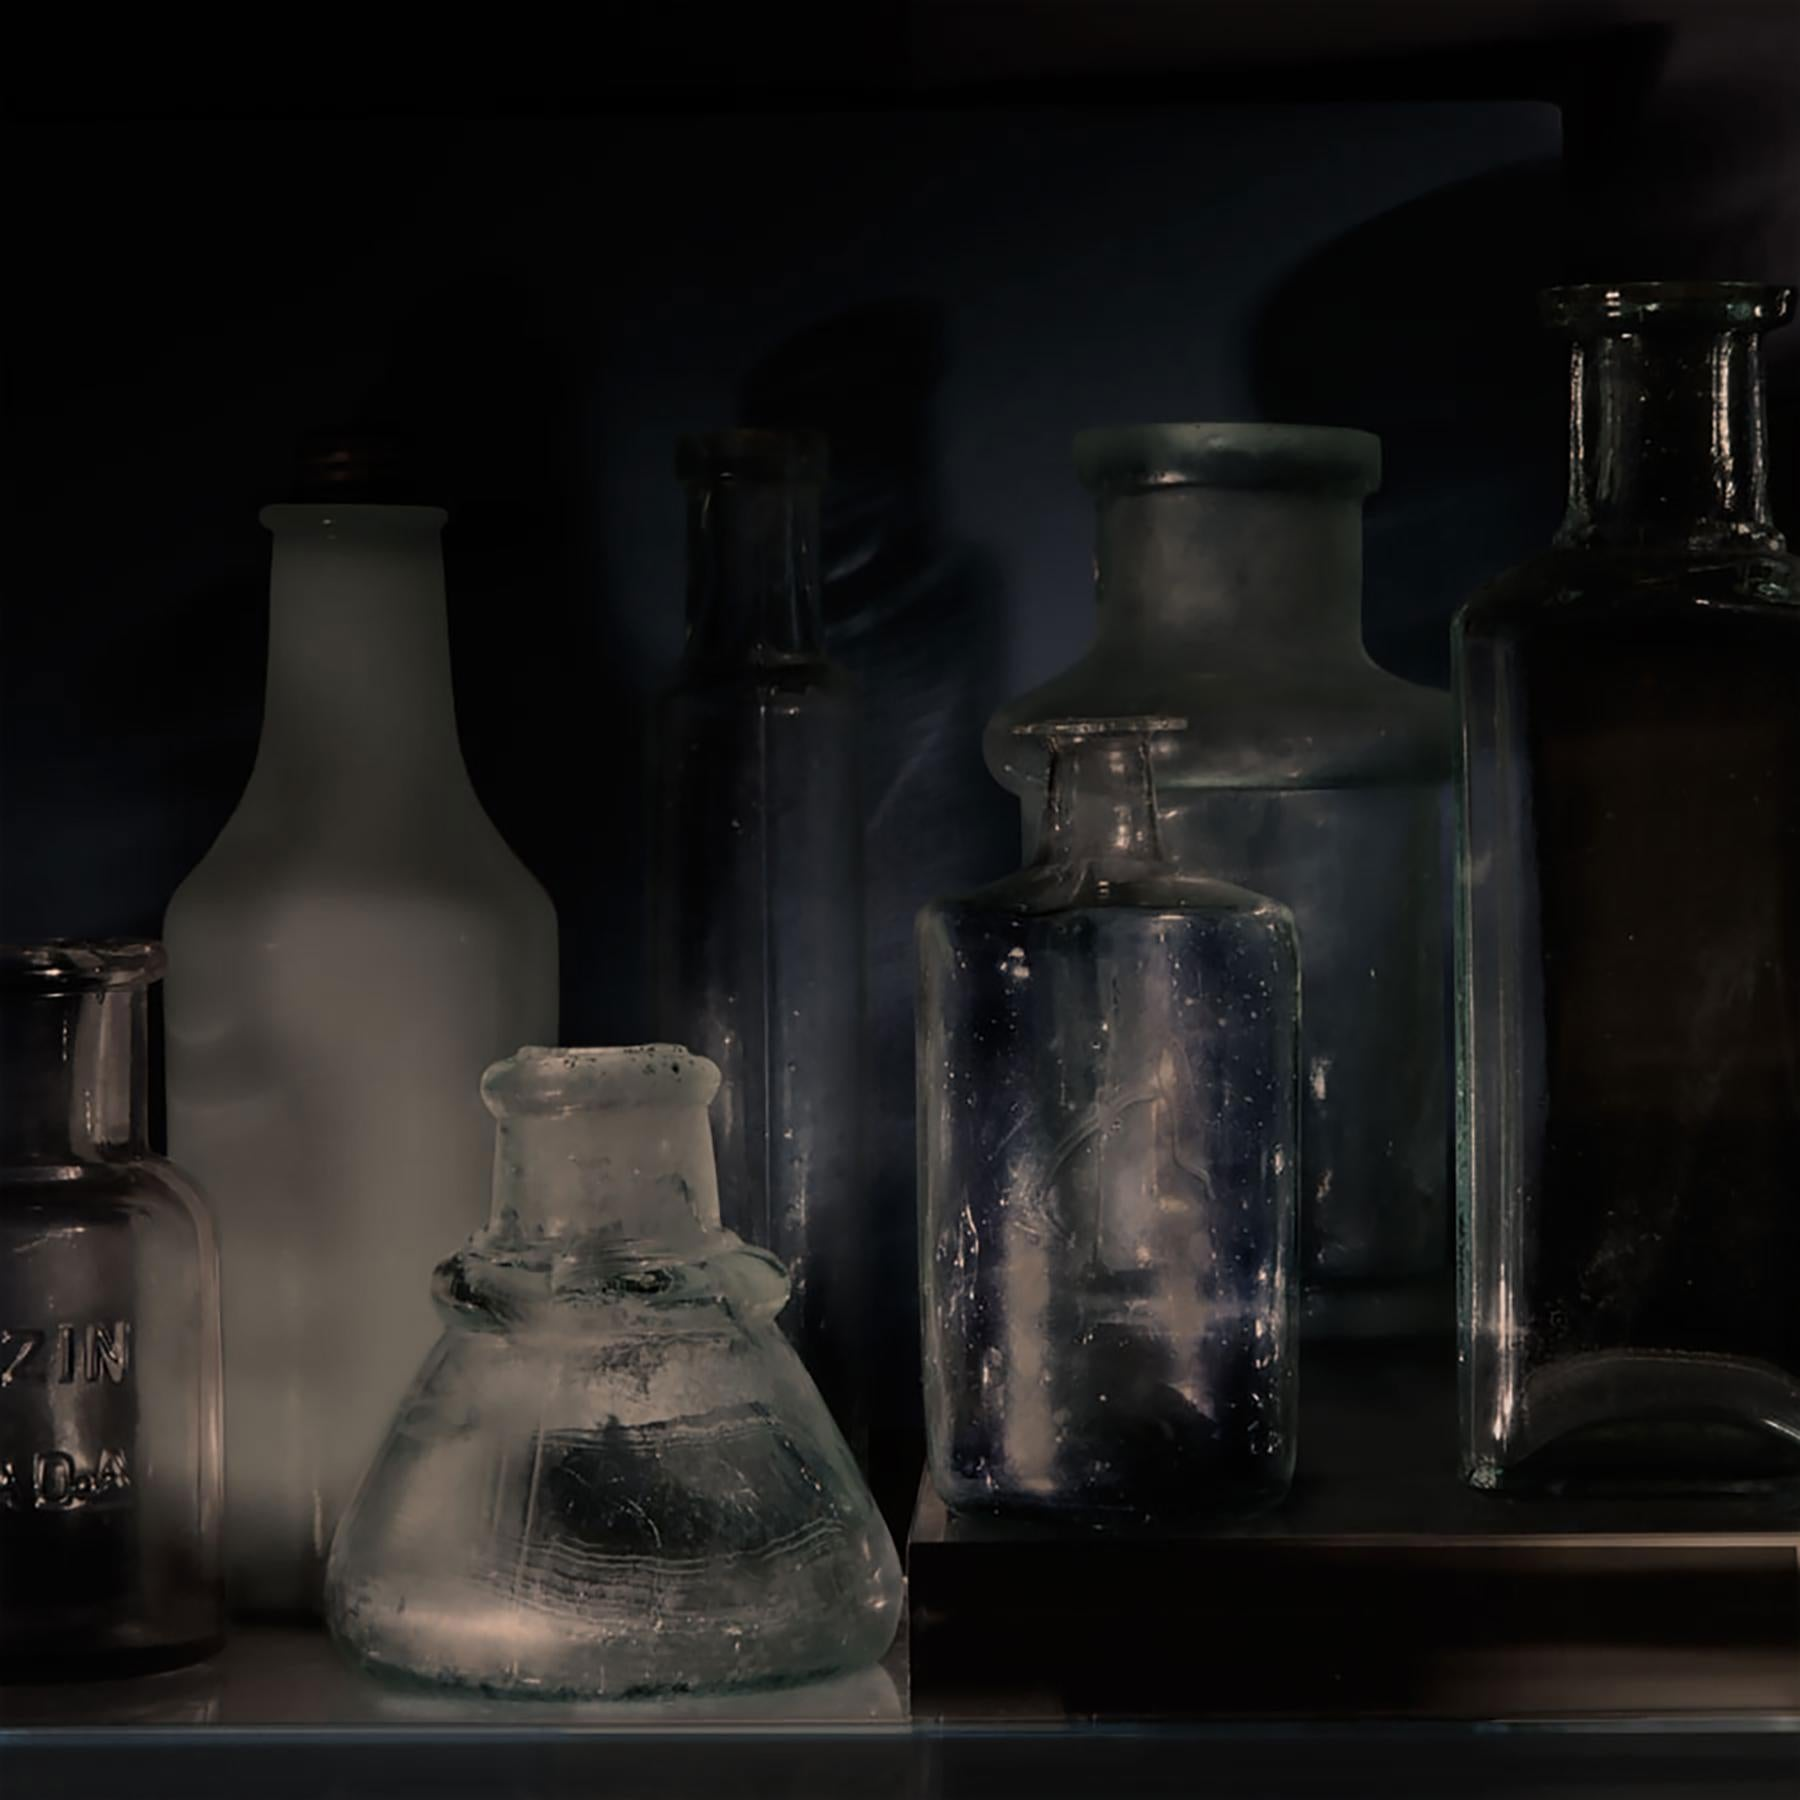 Small Bottles 24a, Still Life Photograph of Glass Bottles on Black Background